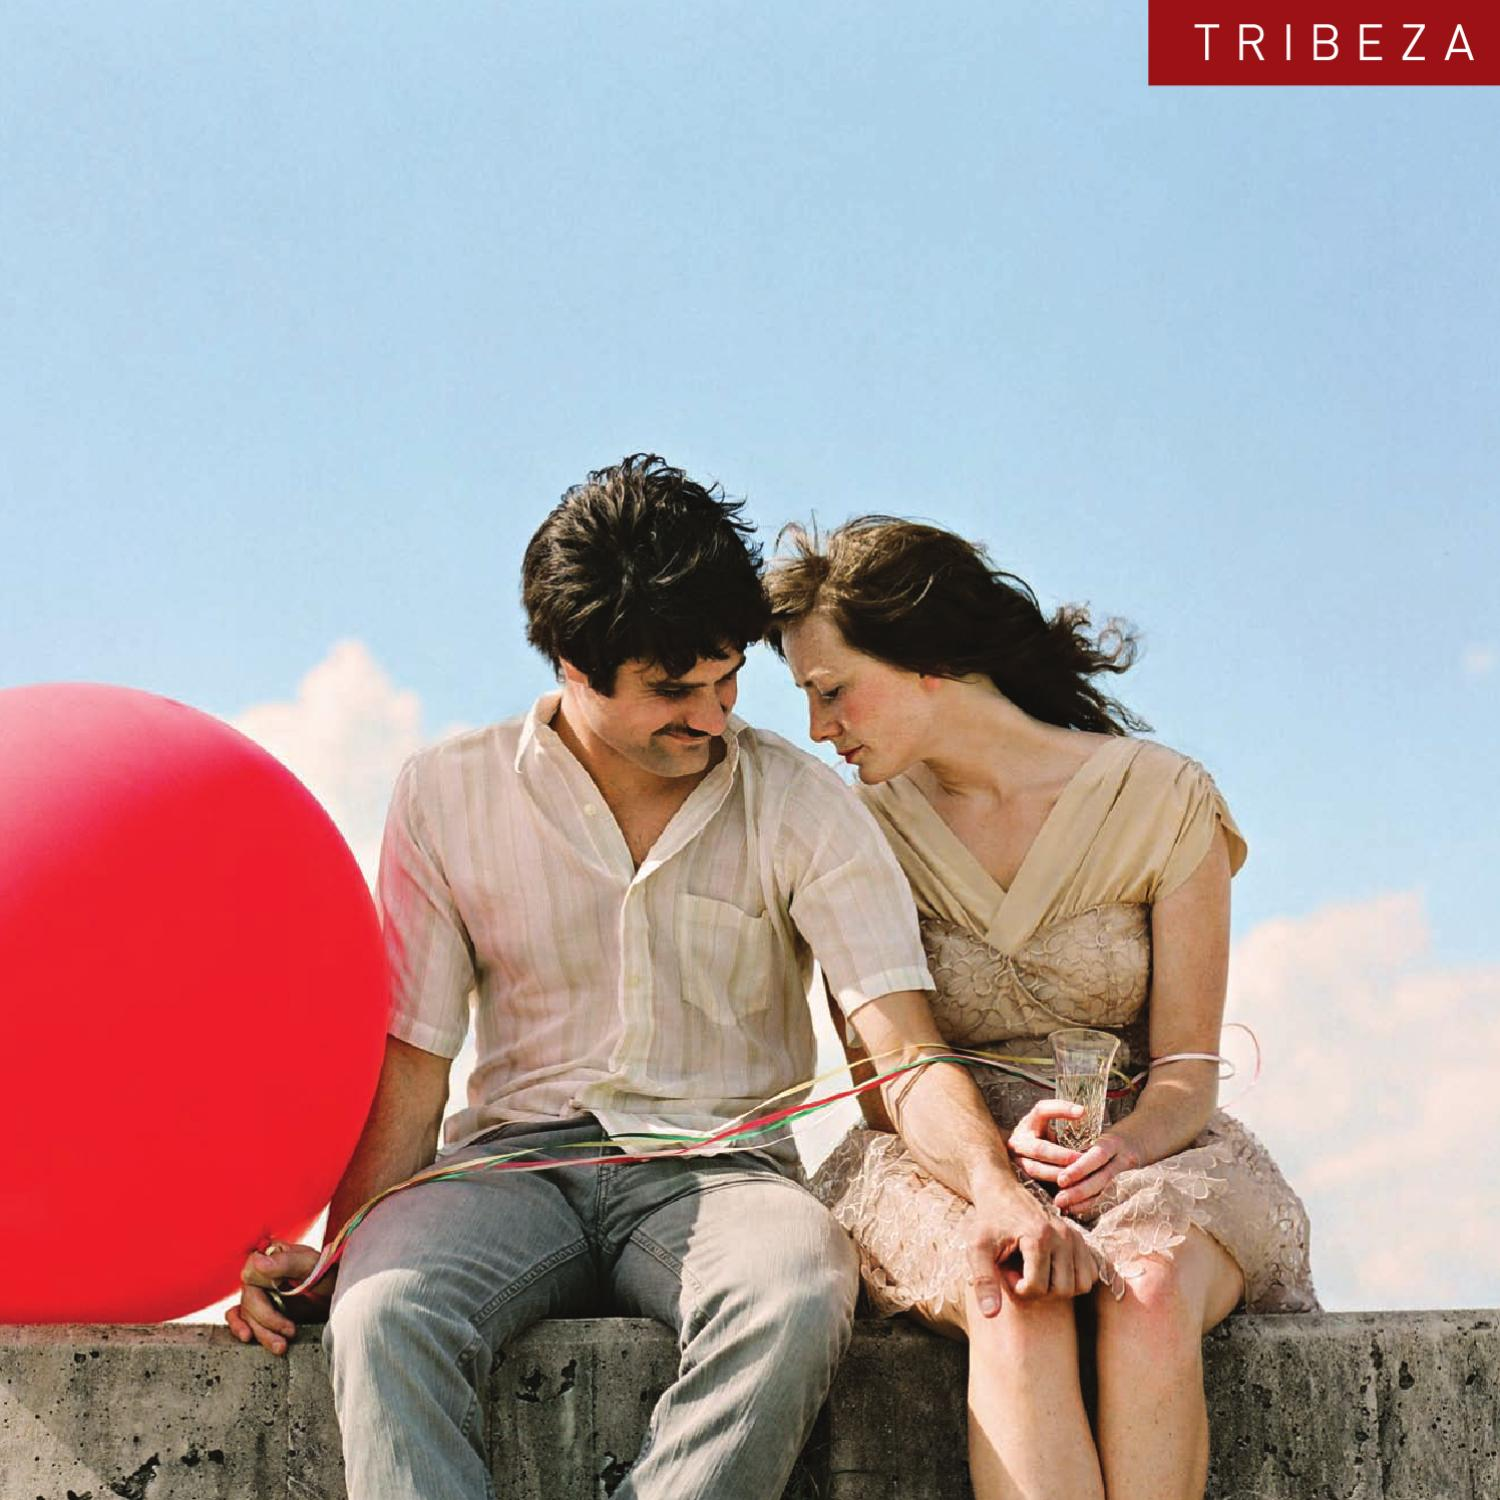 TRIBEZA February 2011 by TRIBEZA Austin Curated issuu